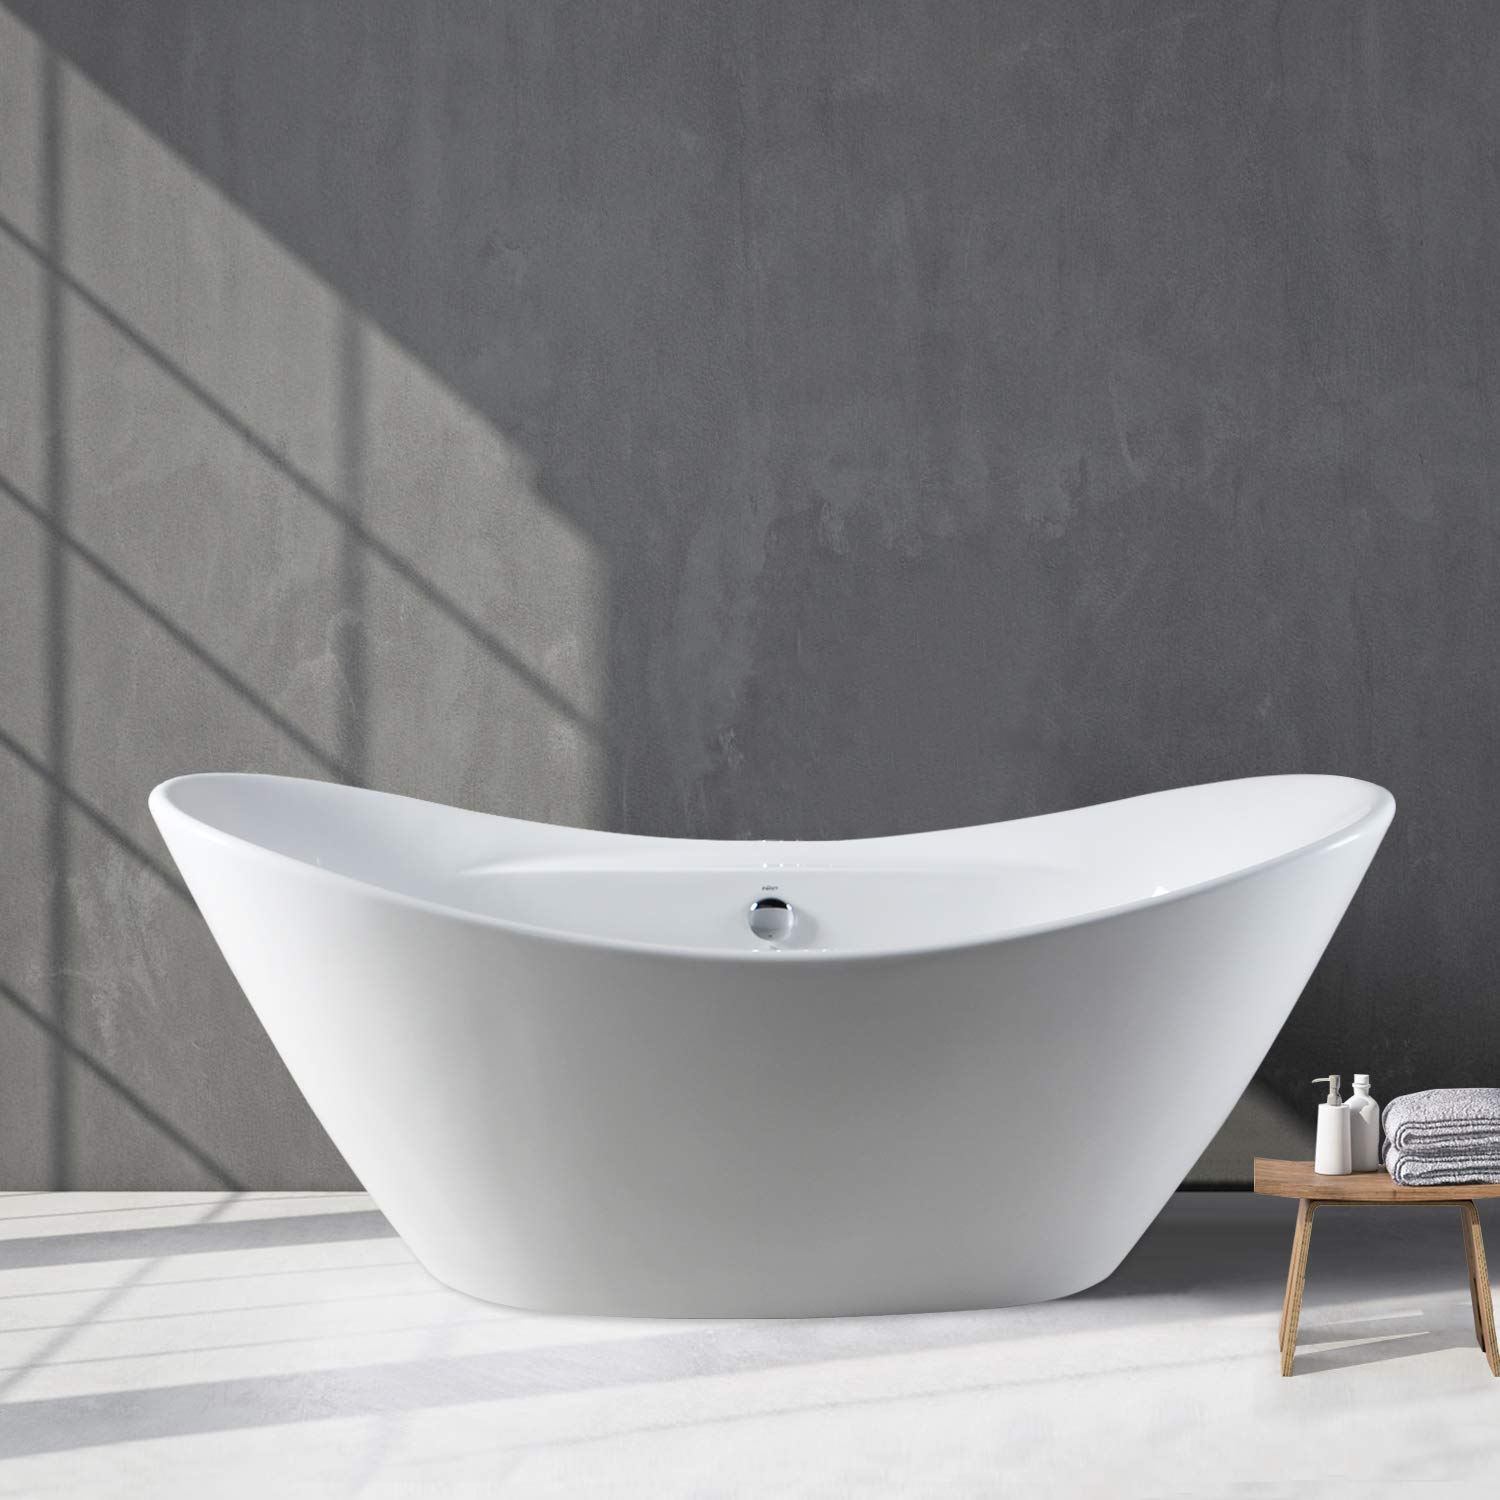 FerdY 67 Curve Edge Freestanding Soaking Bathtub, Glossy White, cUPC Certified, Drain Overflow Assembly Included